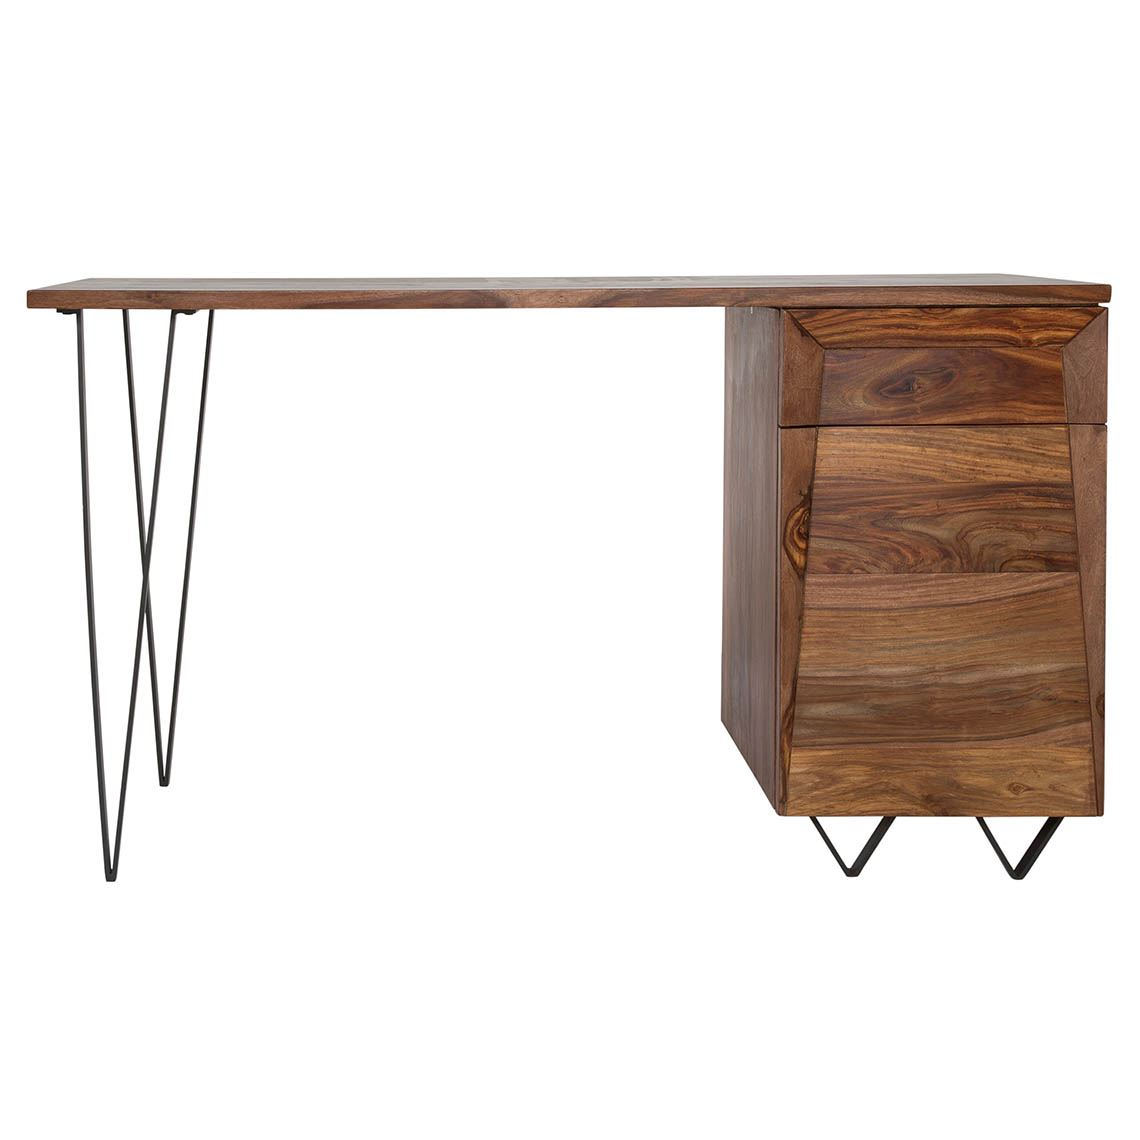 Wyatt Desk Size W 135cm x D 50cm x H 76cm in Natural Sheesham Wood/Steel Freedom by Freedom, a Desks for sale on Style Sourcebook